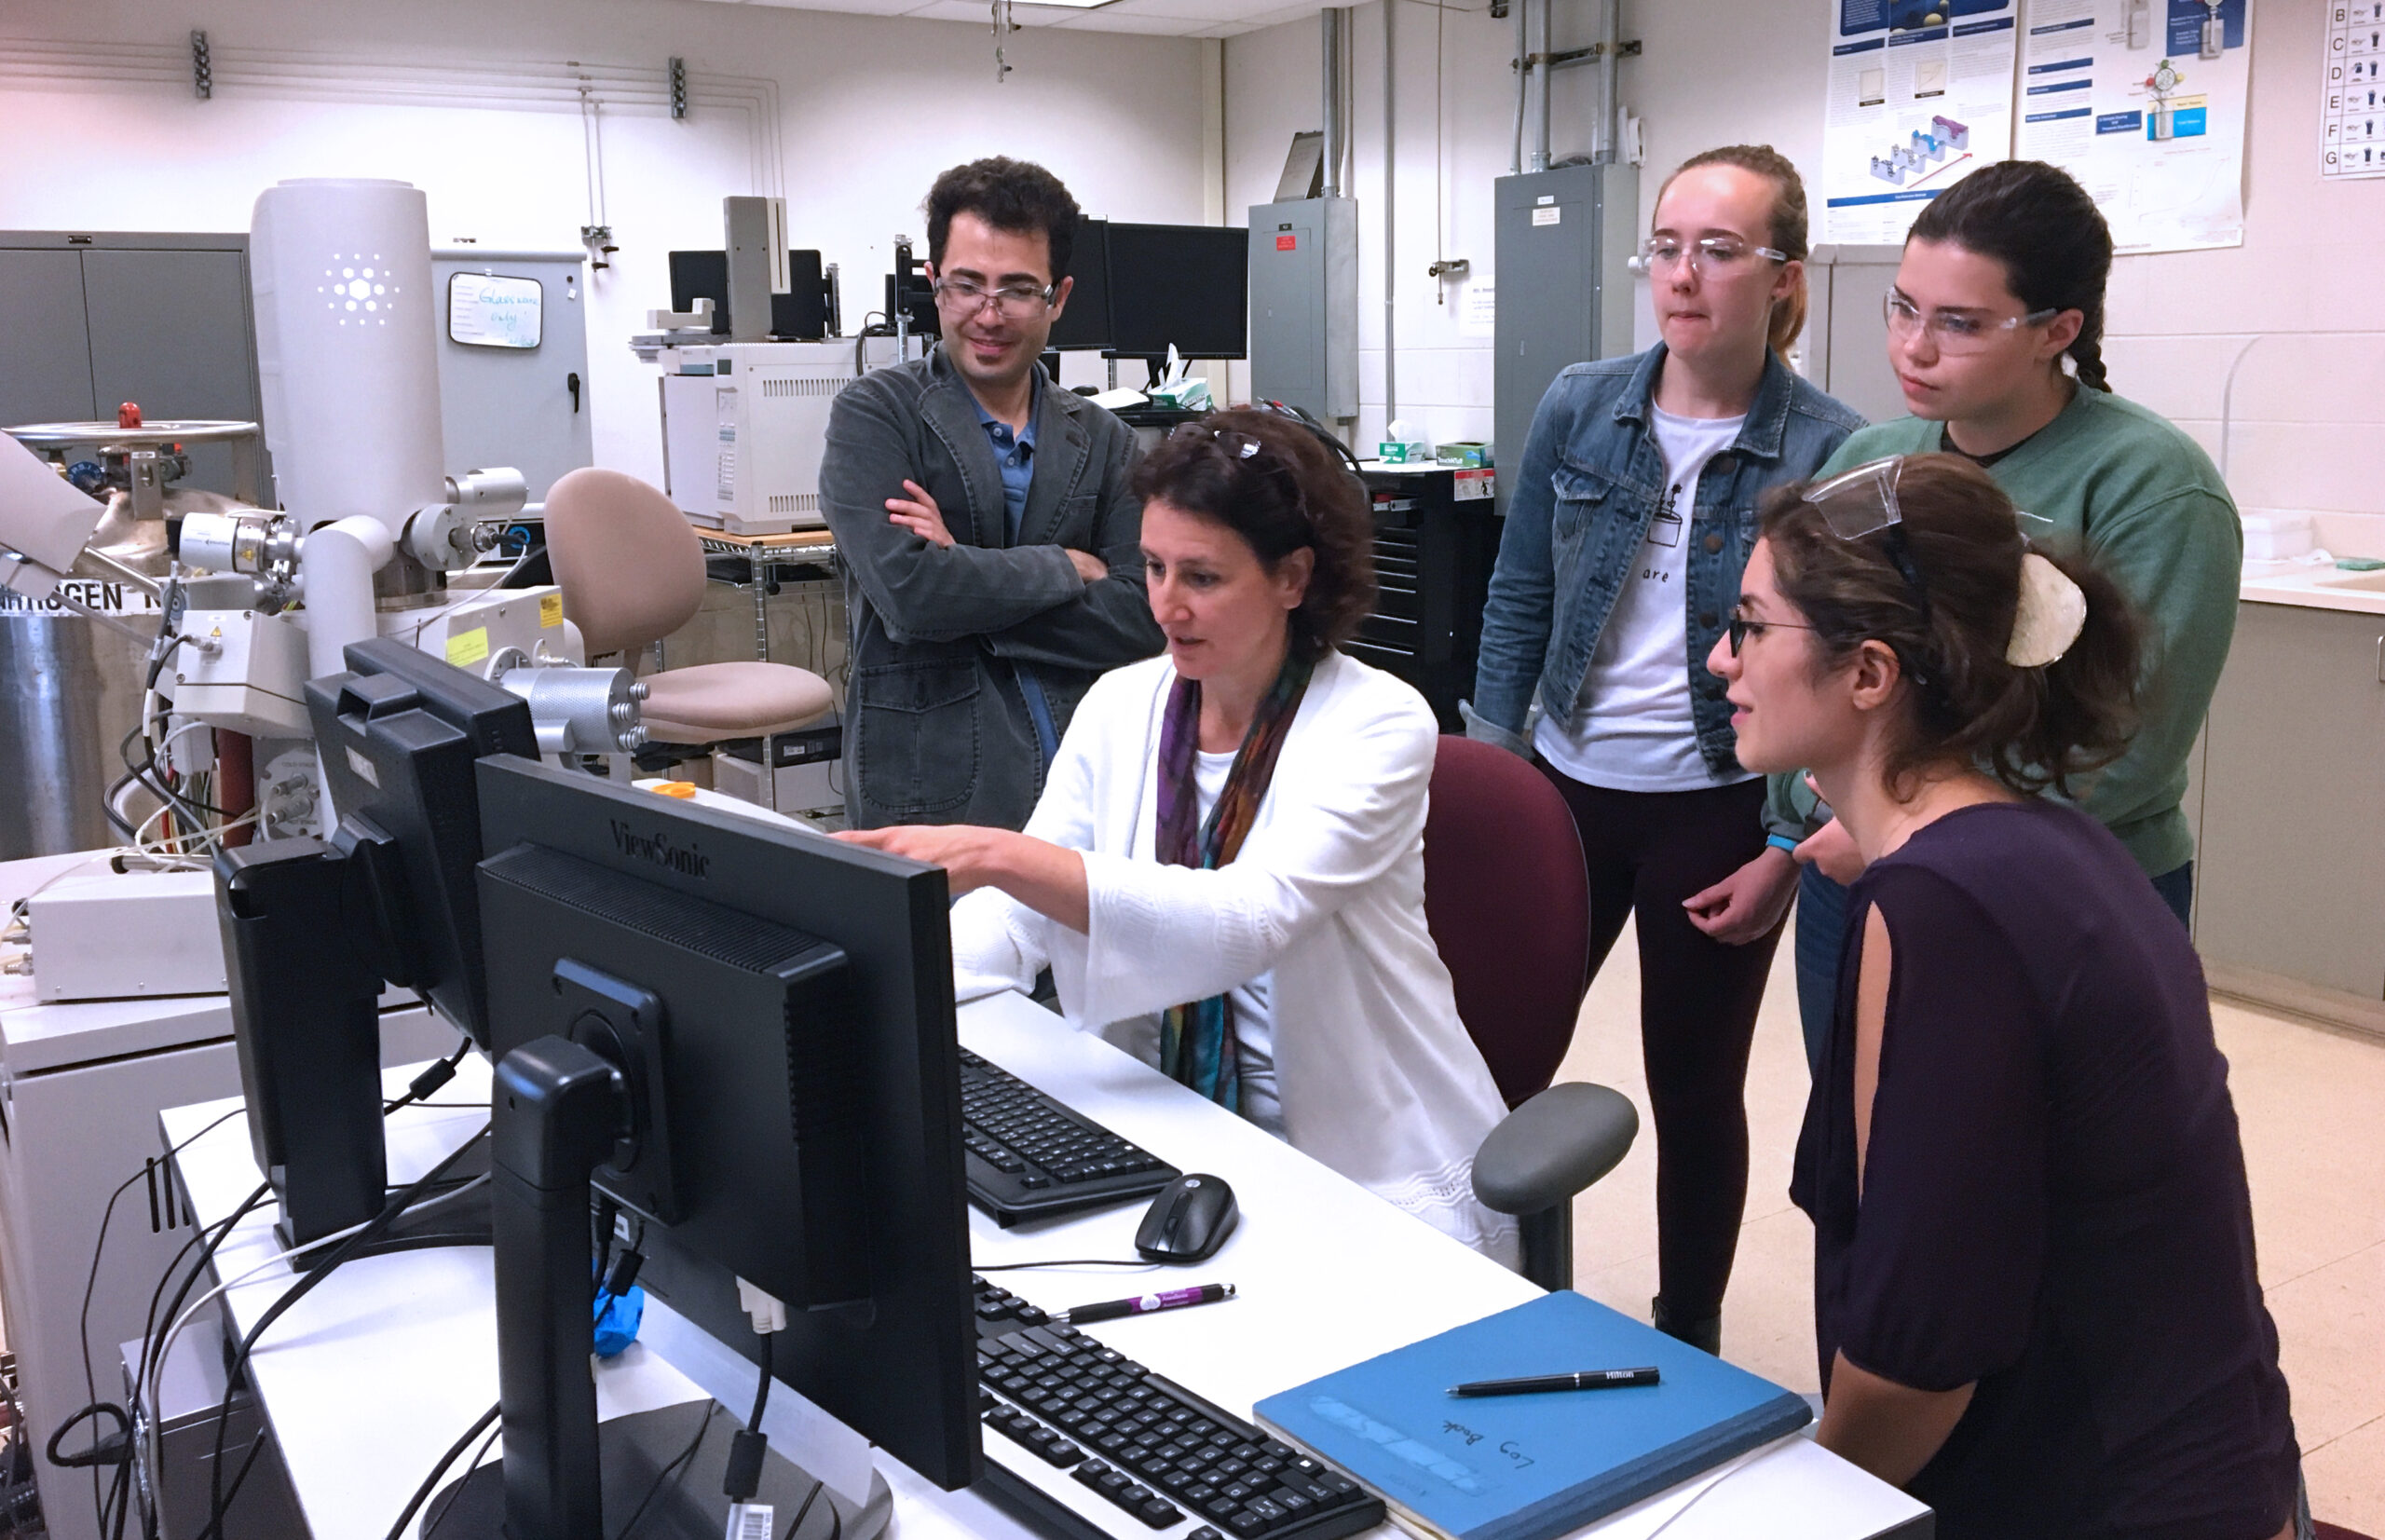 Assistant Professor Jasna Jankovic with her graduate and undergraduate students in the Center for Clean Energy Engineering.